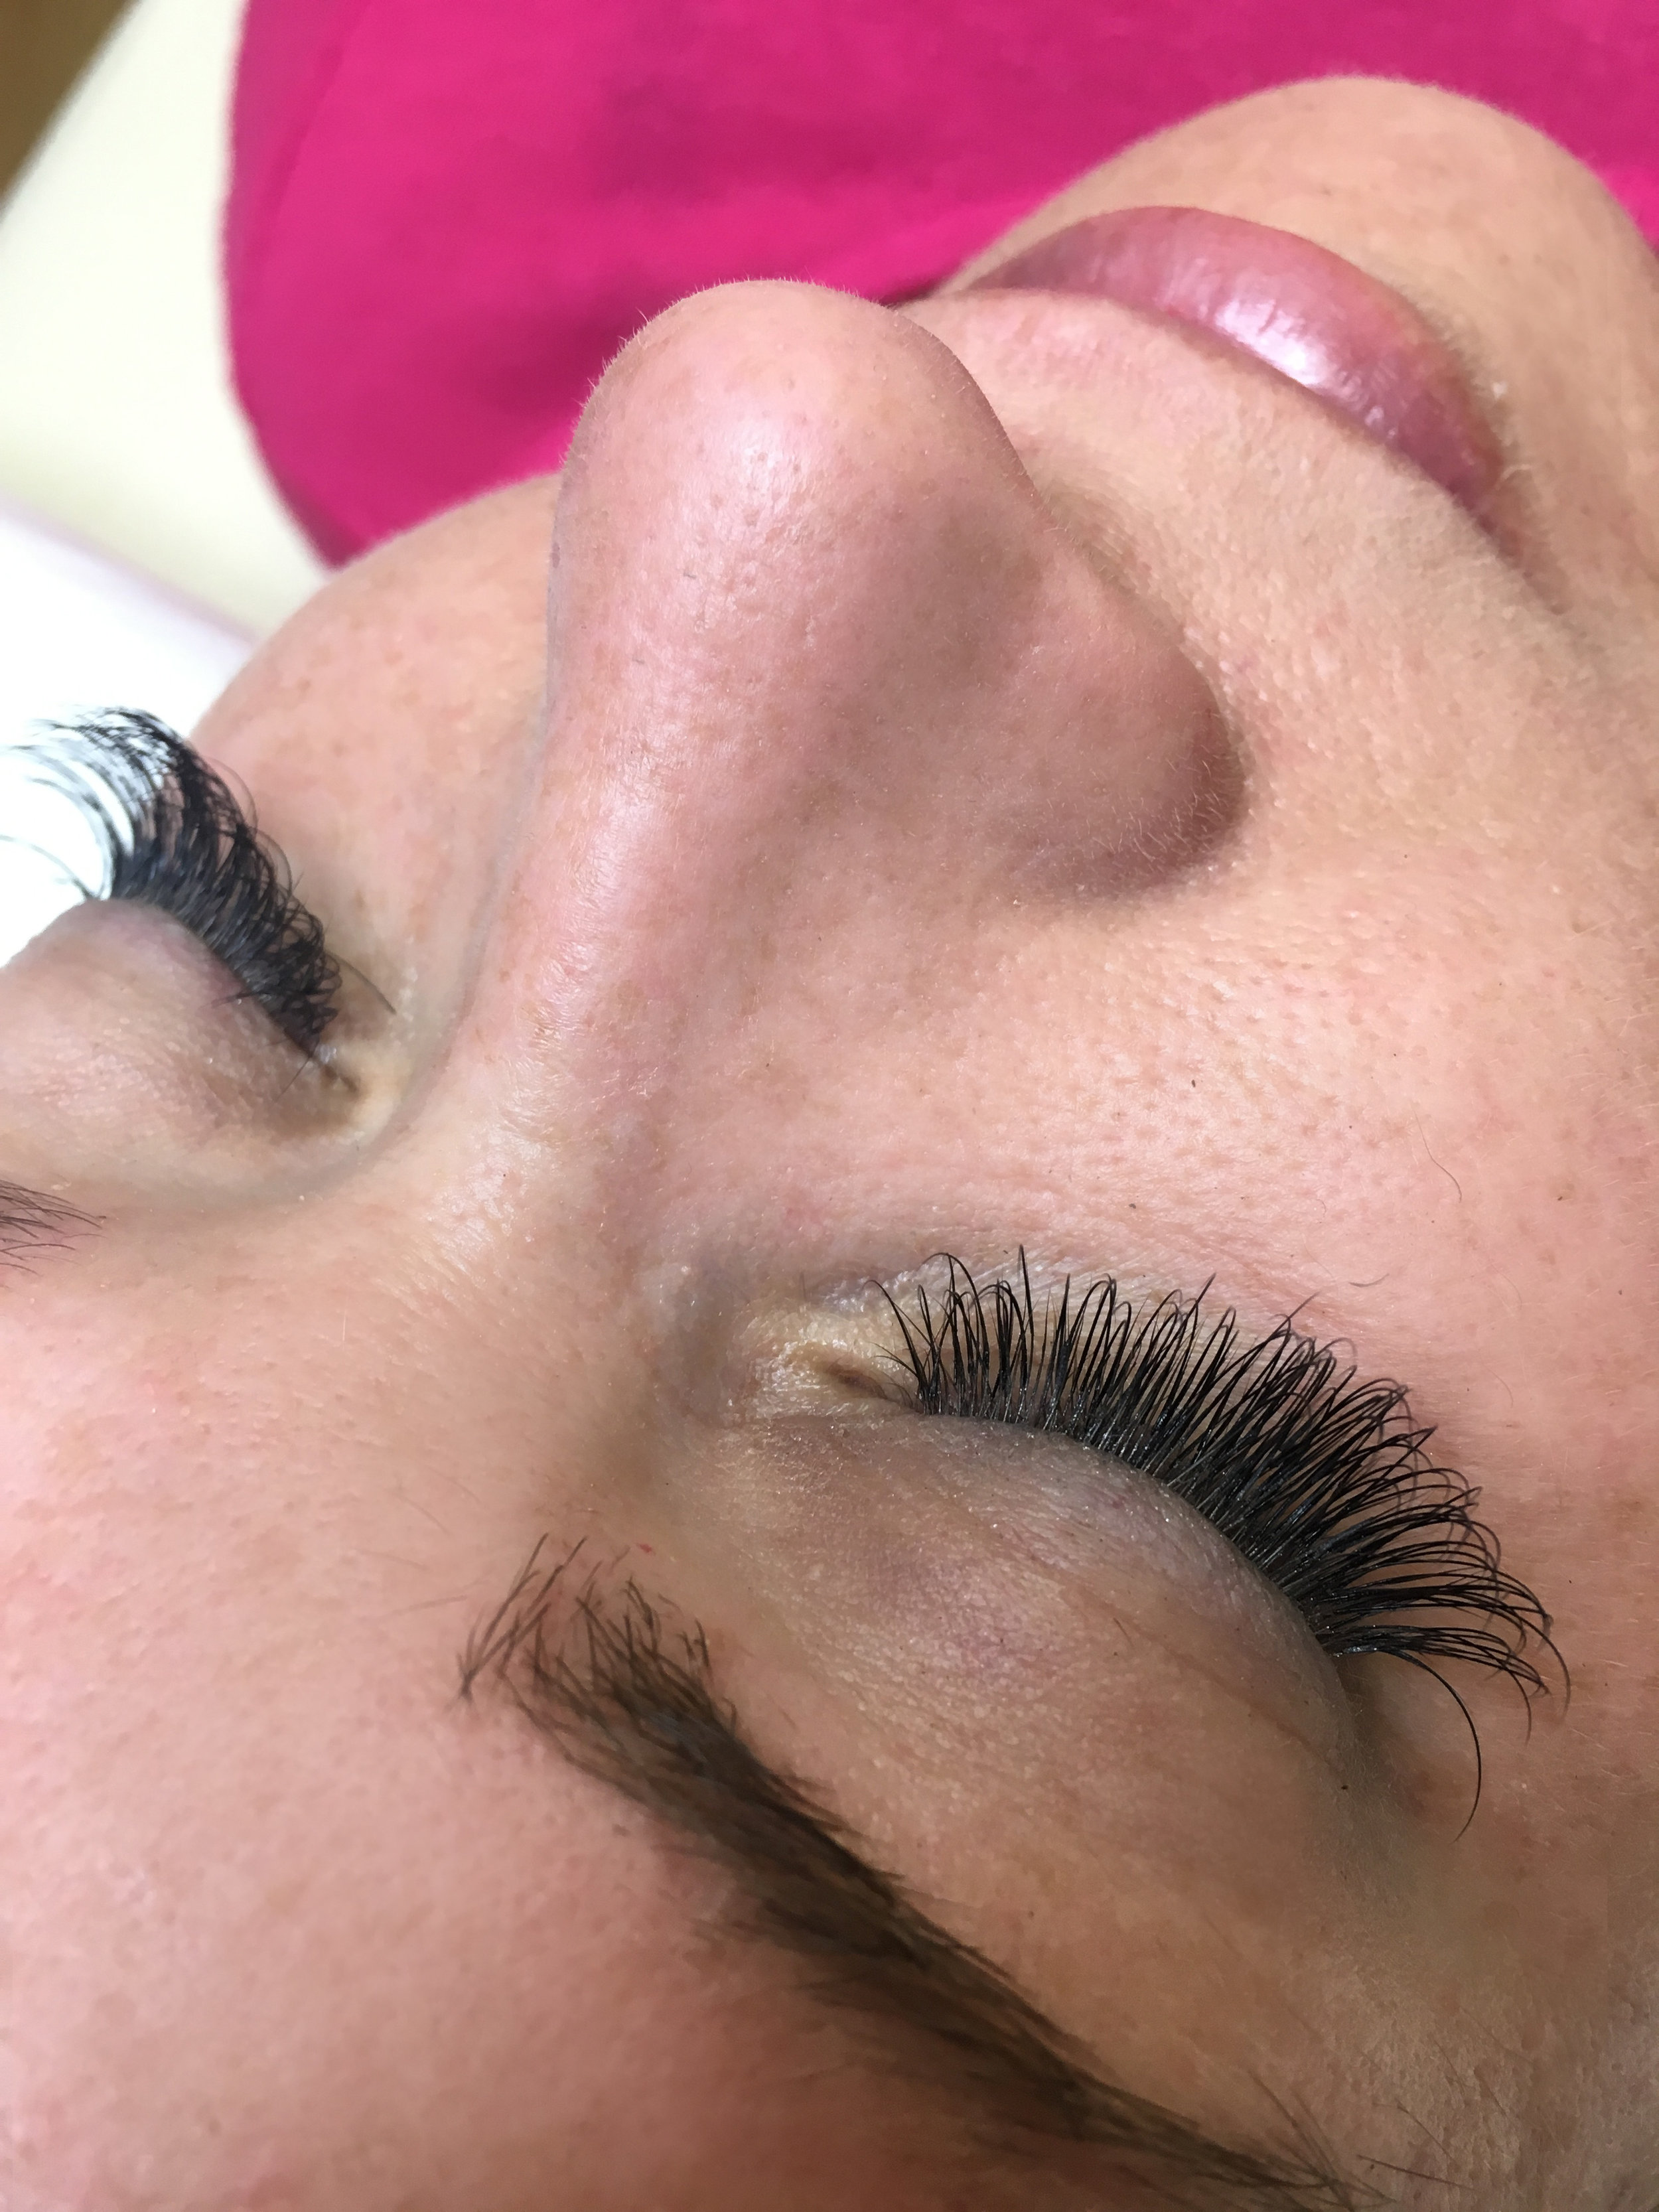 """""""I have always been extremely satisfied with my lashes done by Amanda! I get so many compliments on them. They are beautiful and natural. She is very professional and when I lay down to get my lashes done I get to relax and close my eyes. The pads she uses are way better than other places because they do not make my skin itch and are not heavy. She makes the bed warm, has a soft blanket, calming music and uses a soft pillow to make my experience amazing!"""" -Angela"""